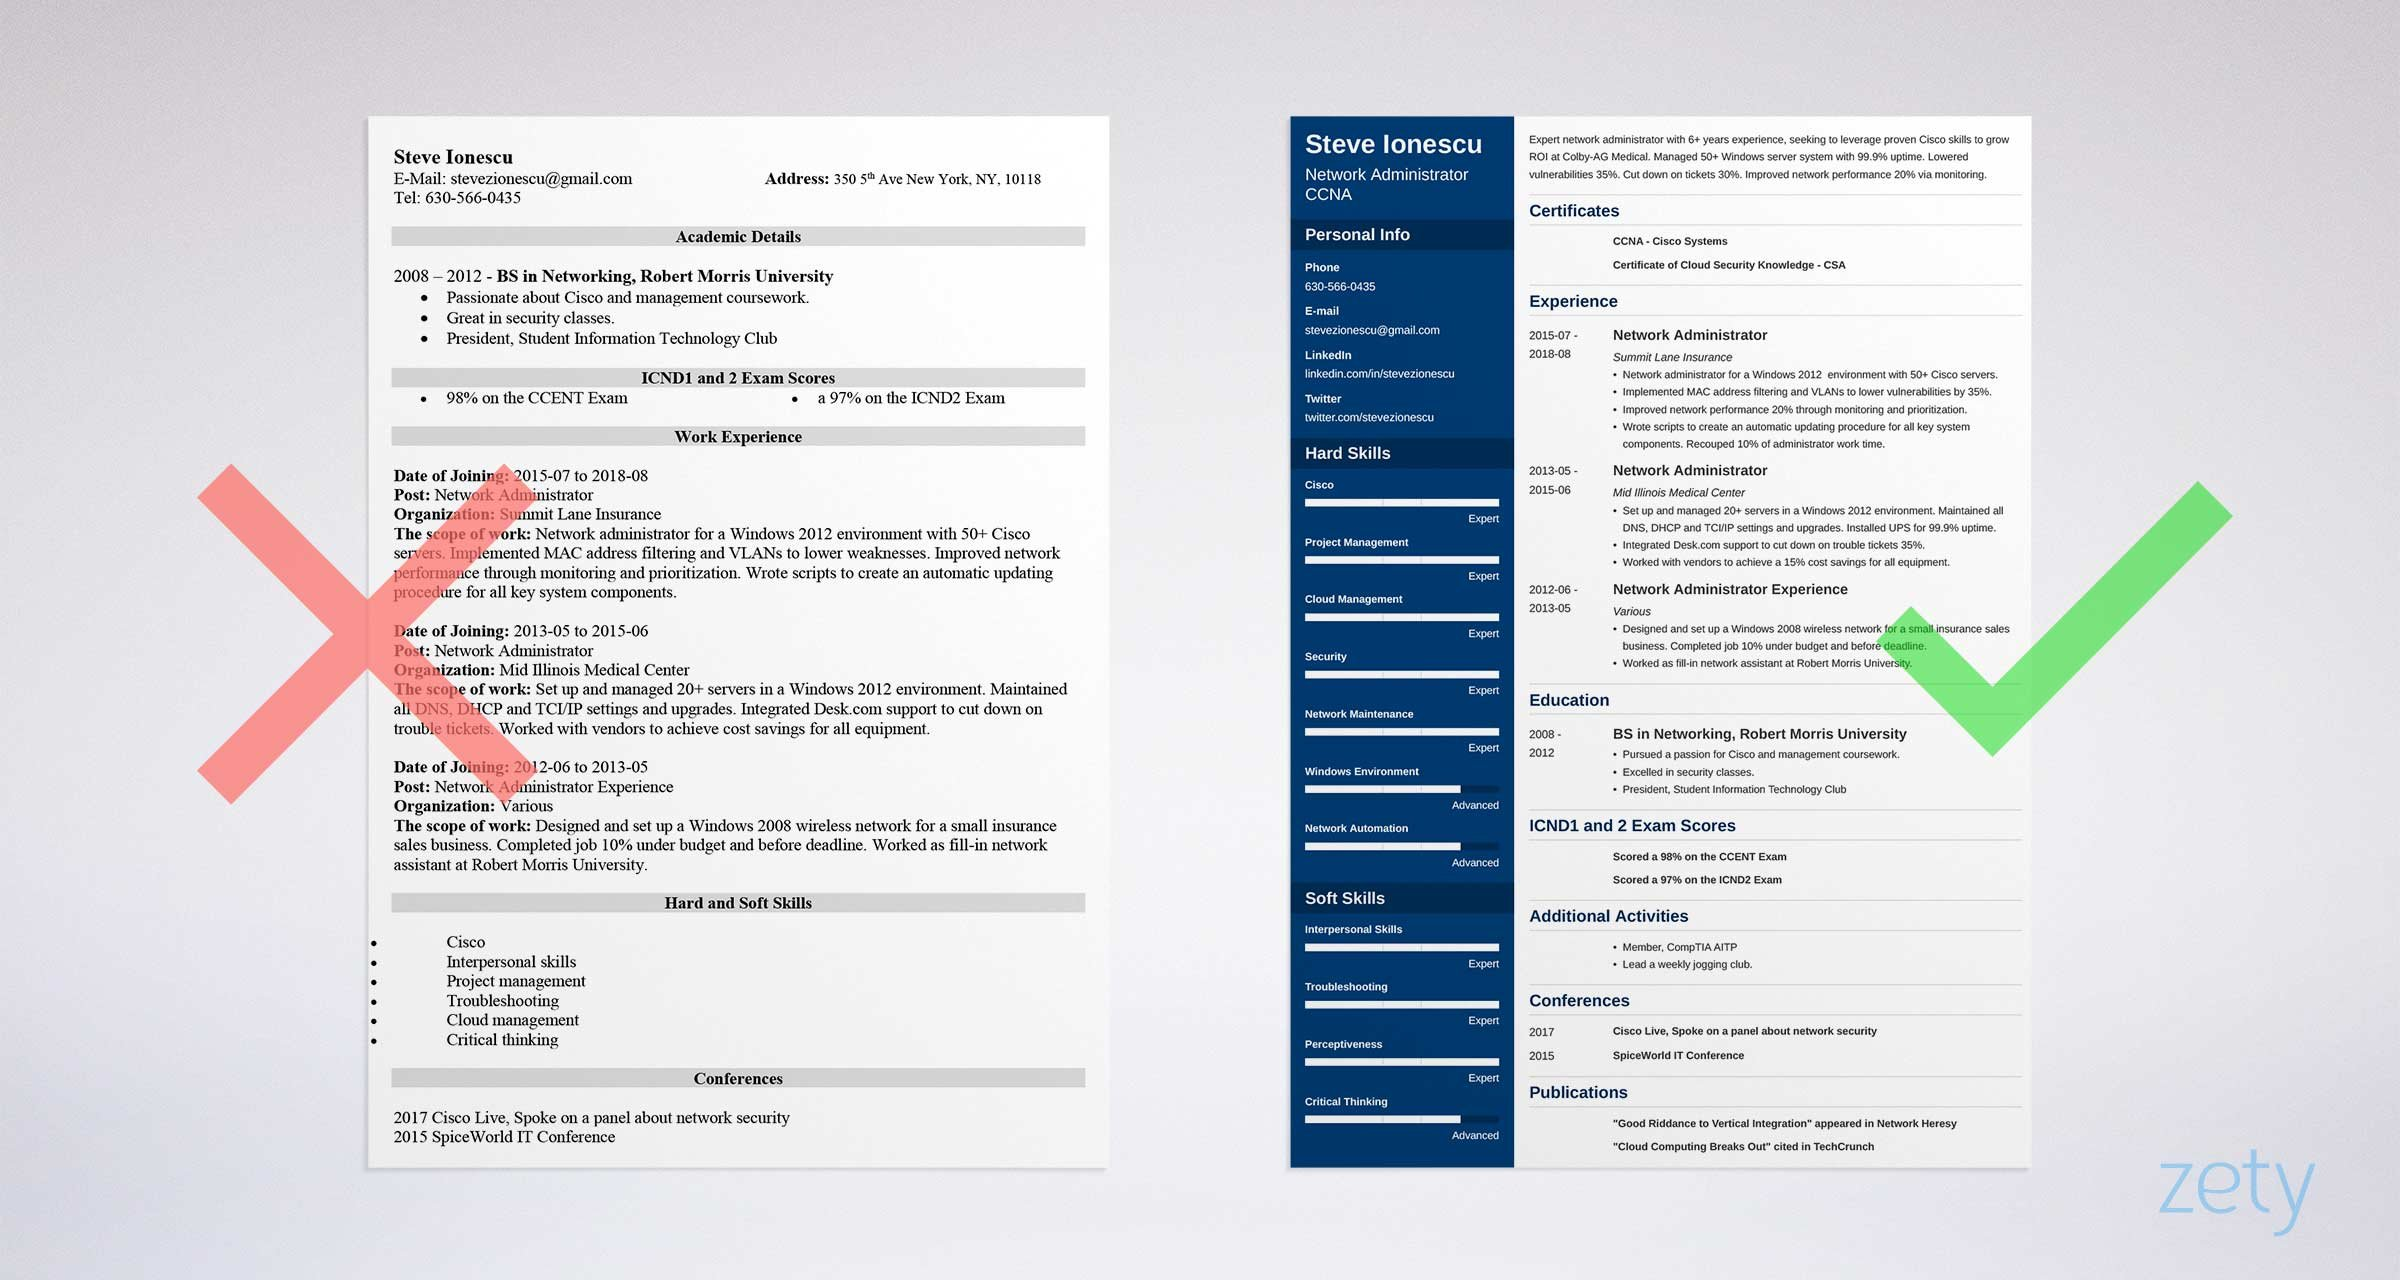 Network Administrator Resume Example See 20 Resume Templates And Create Your Resume Here. network administrator resume. page essay on responsibility research proposal for psychology bid. it administrator resume network administrator resume. assistant network administrator resume admin resume template. waitress job description resume sample restaurant administrative it network administrator profil